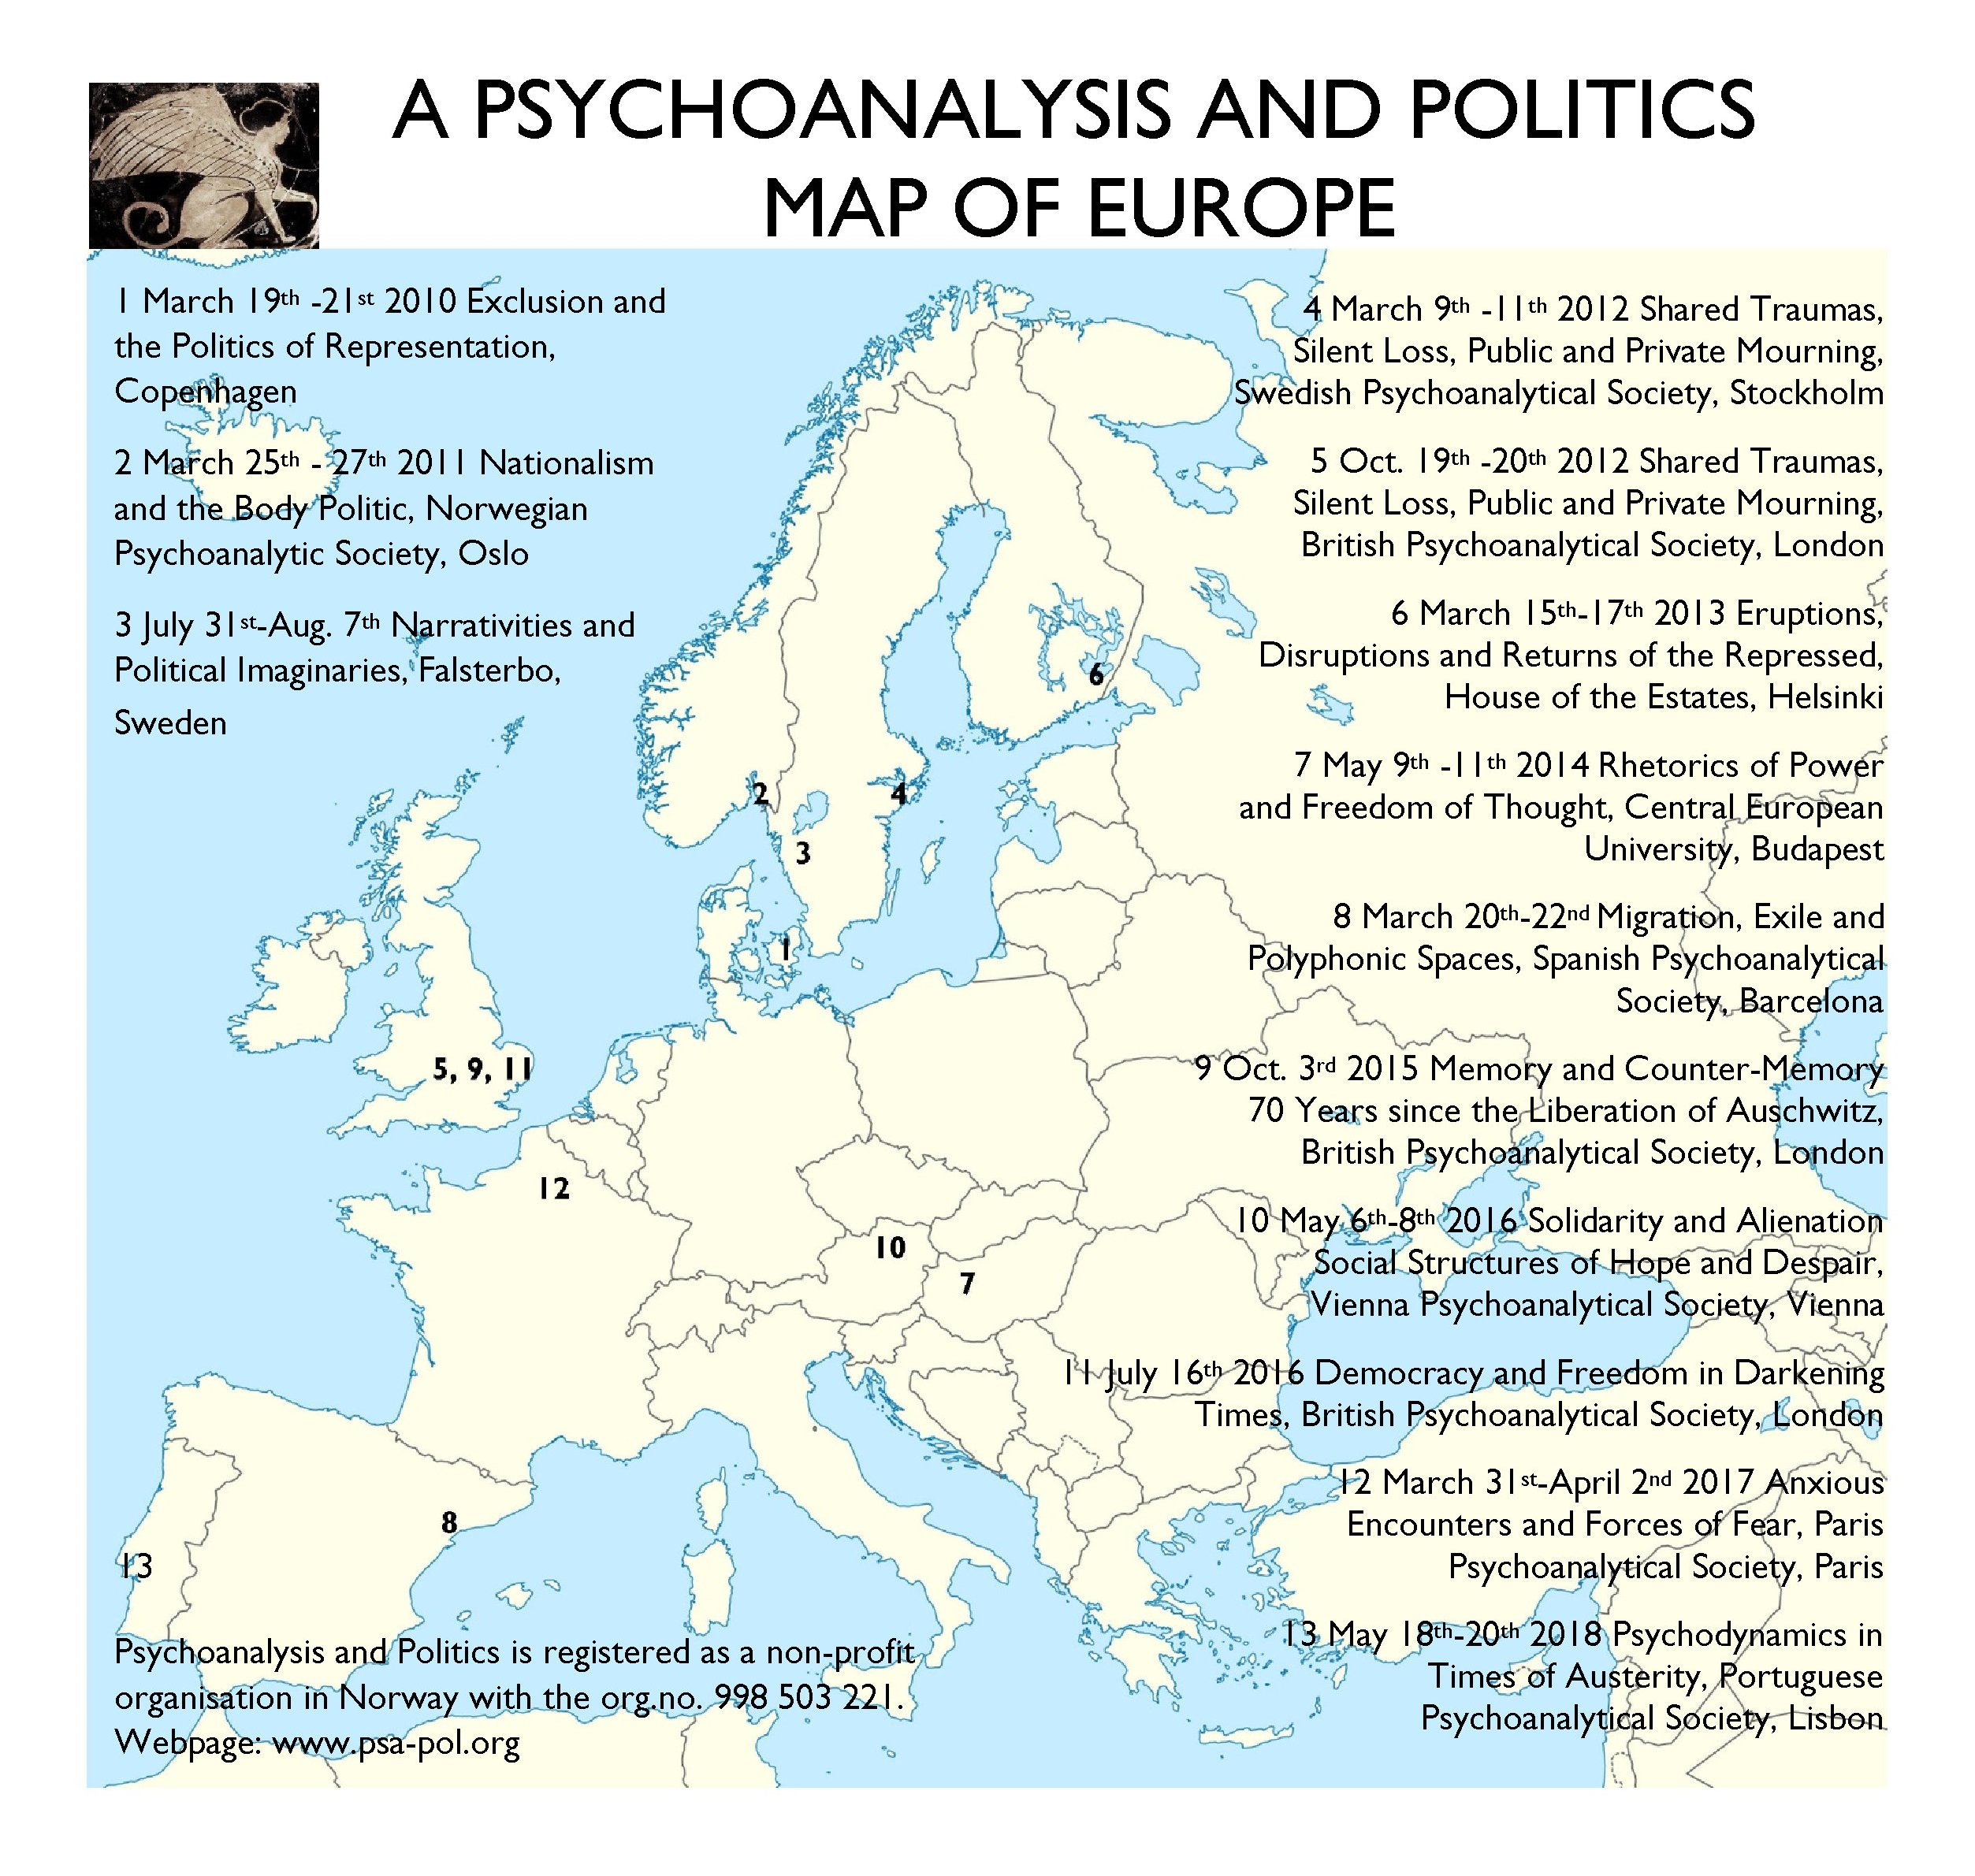 A PSYCHOANALYSIS AND POLITICS MAP OF EUROPE-2018